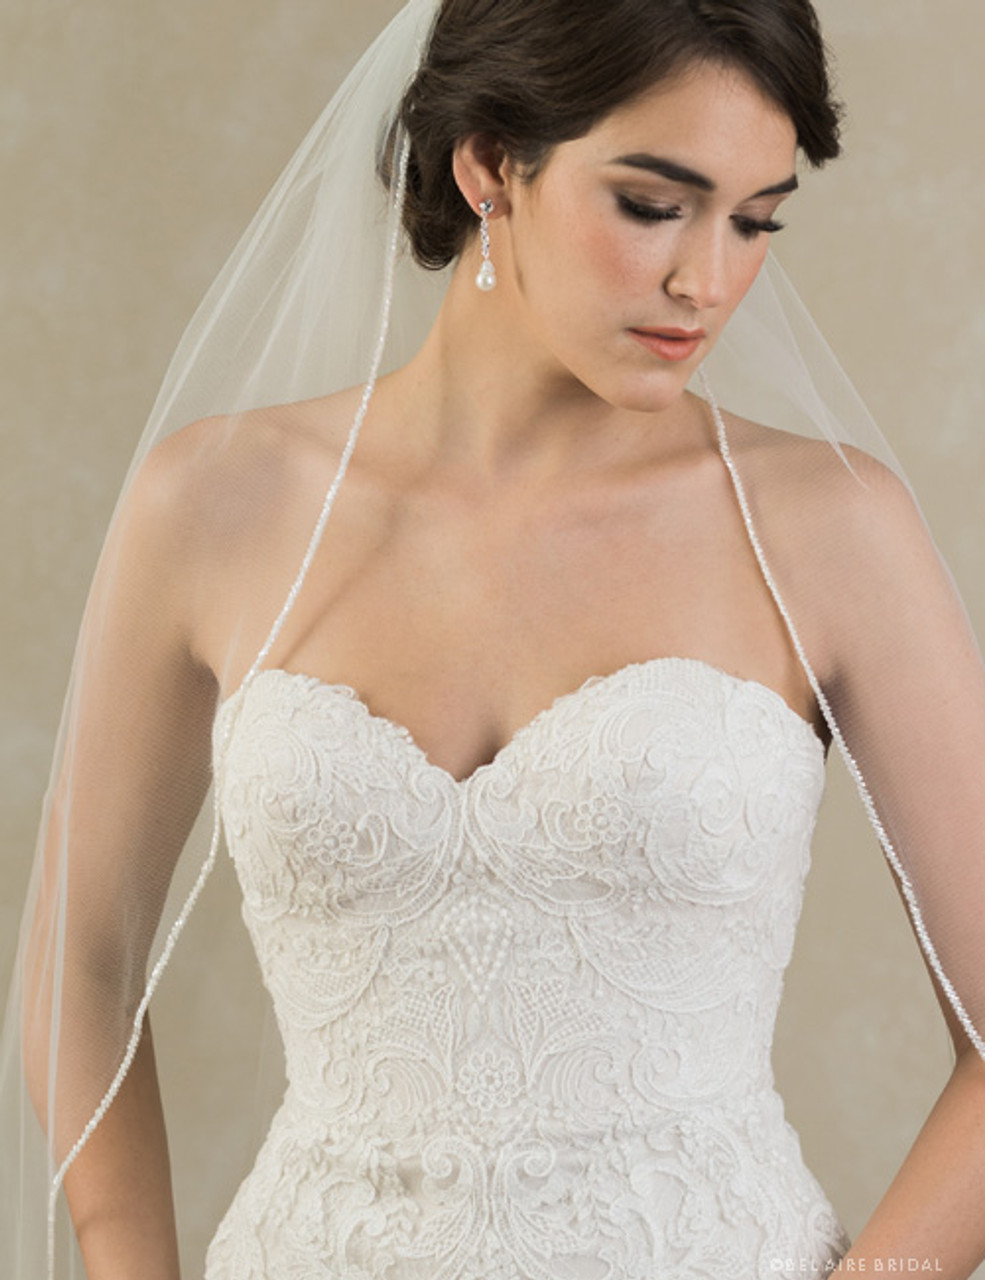 Bel Aire Bridal Veils V7383C -  Cathedral veil with frosted bead edge